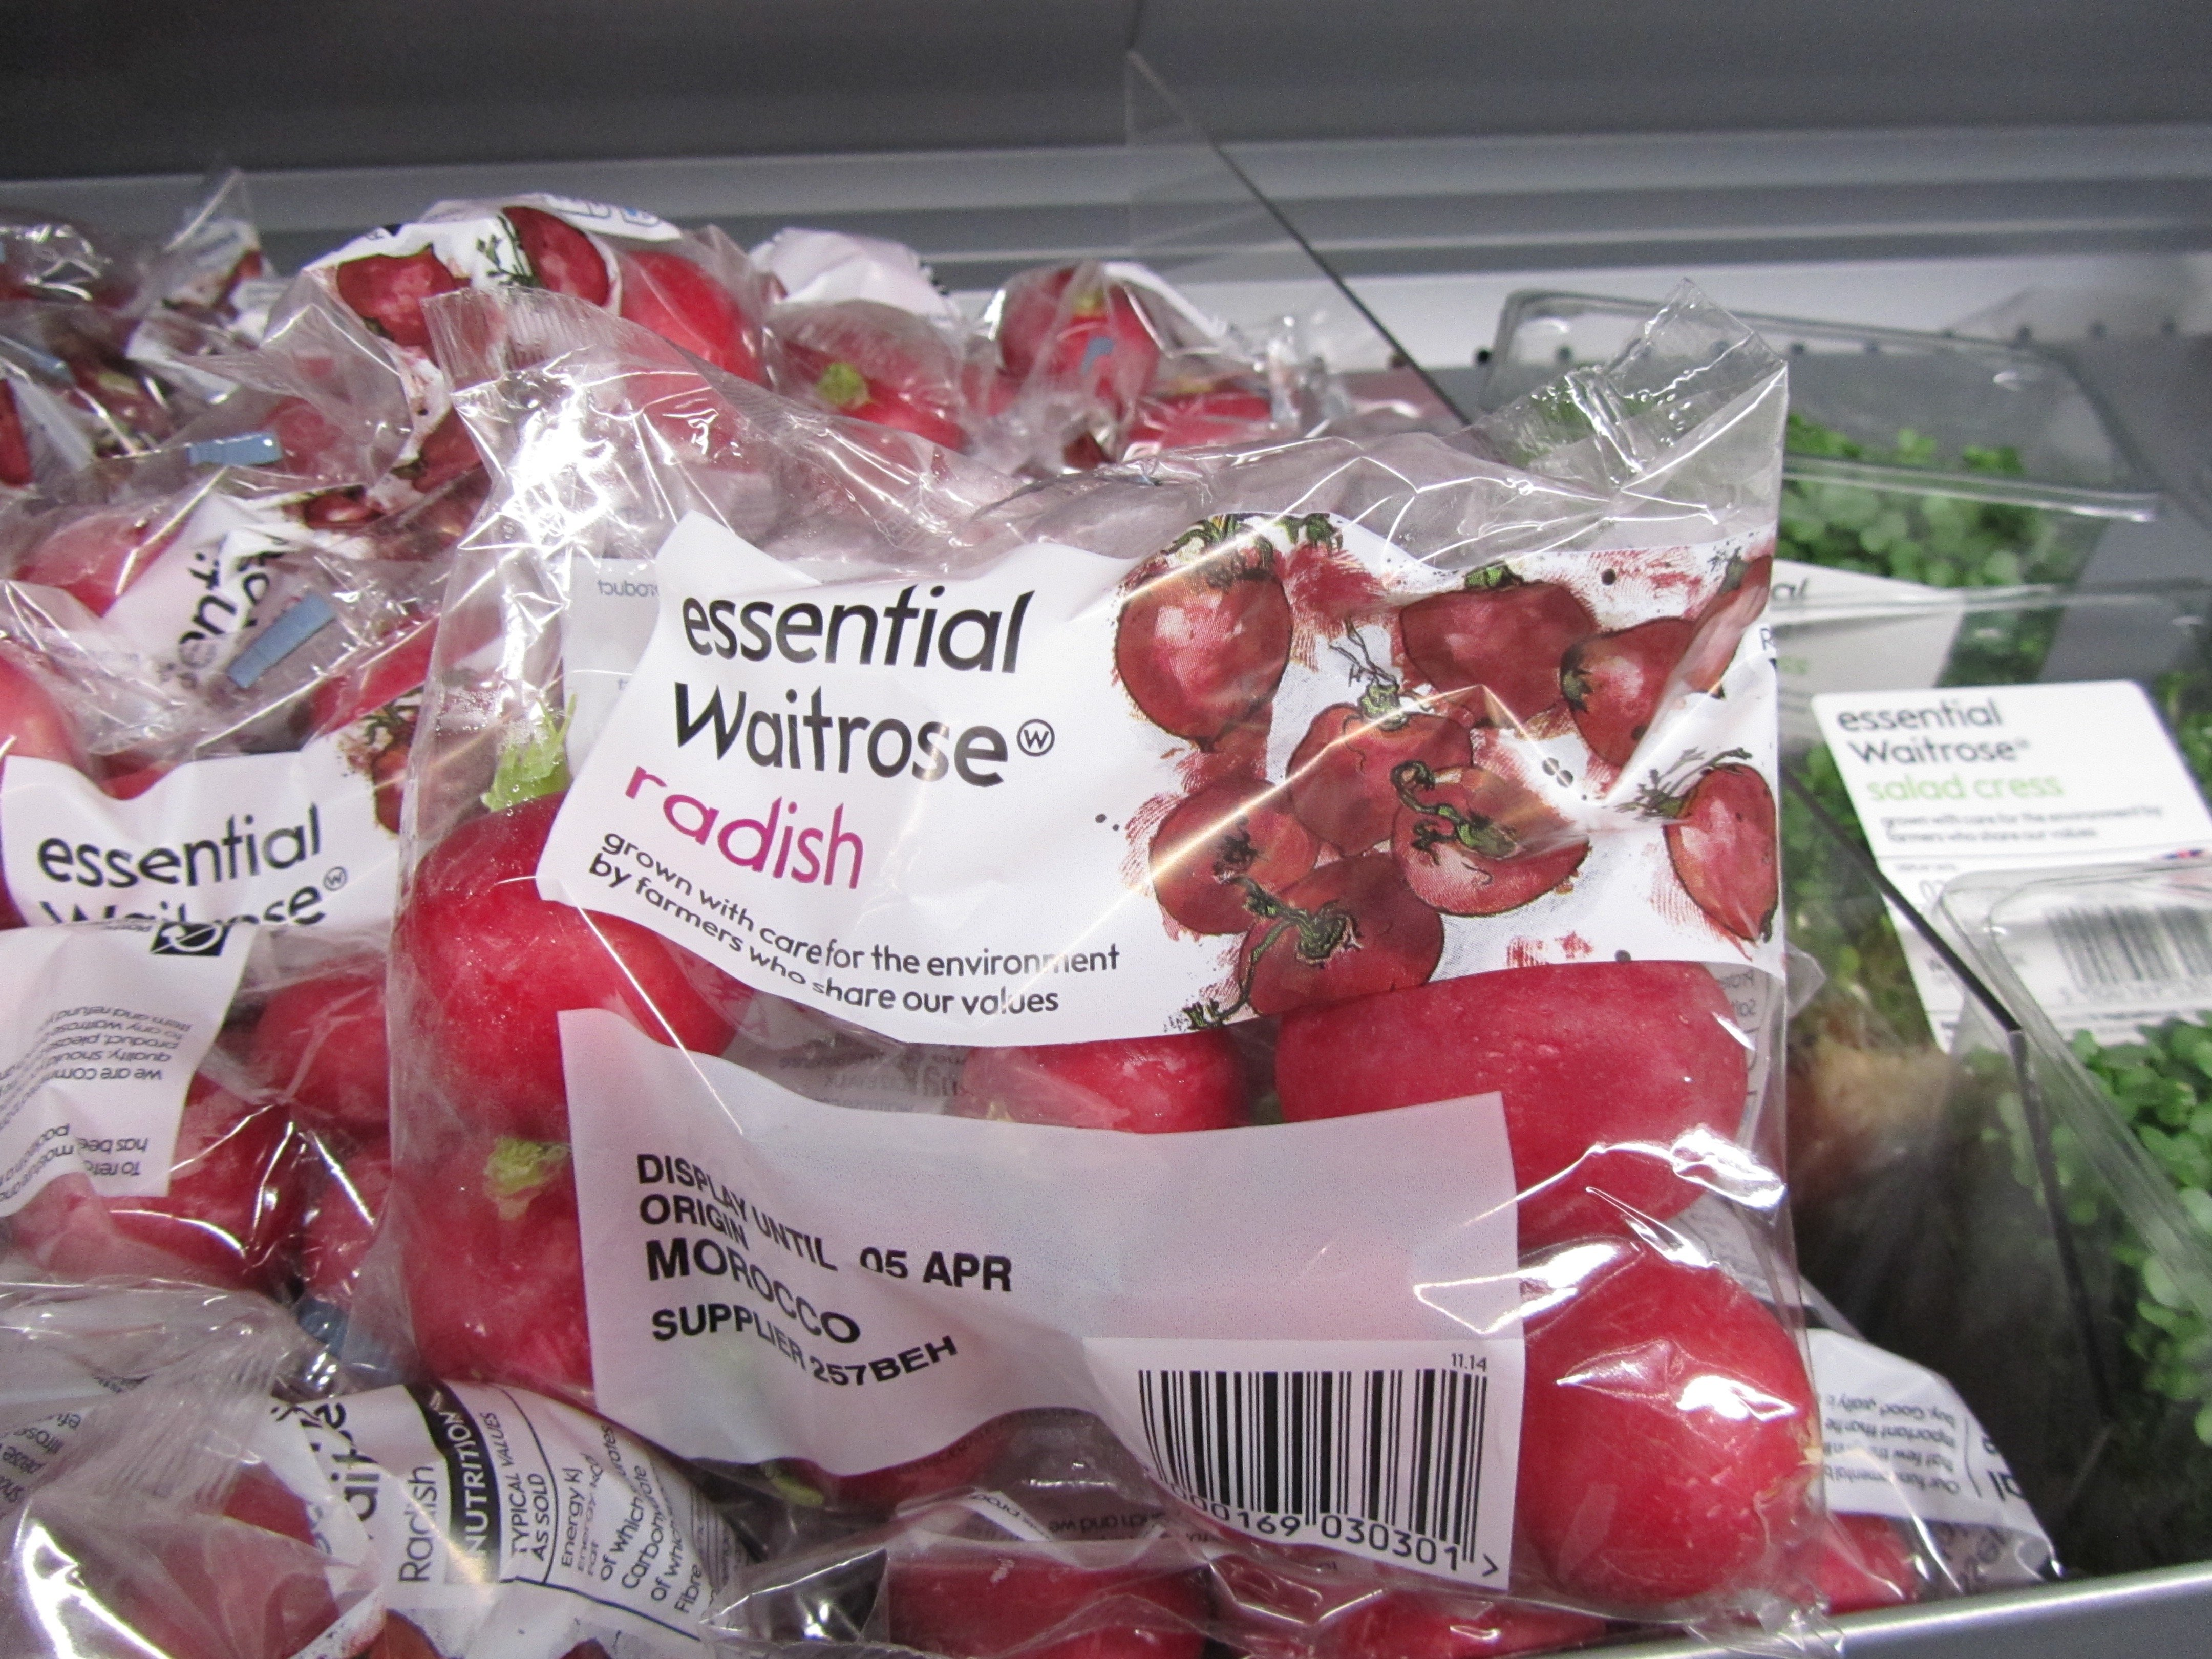 Ahhhhh radishes, essential!